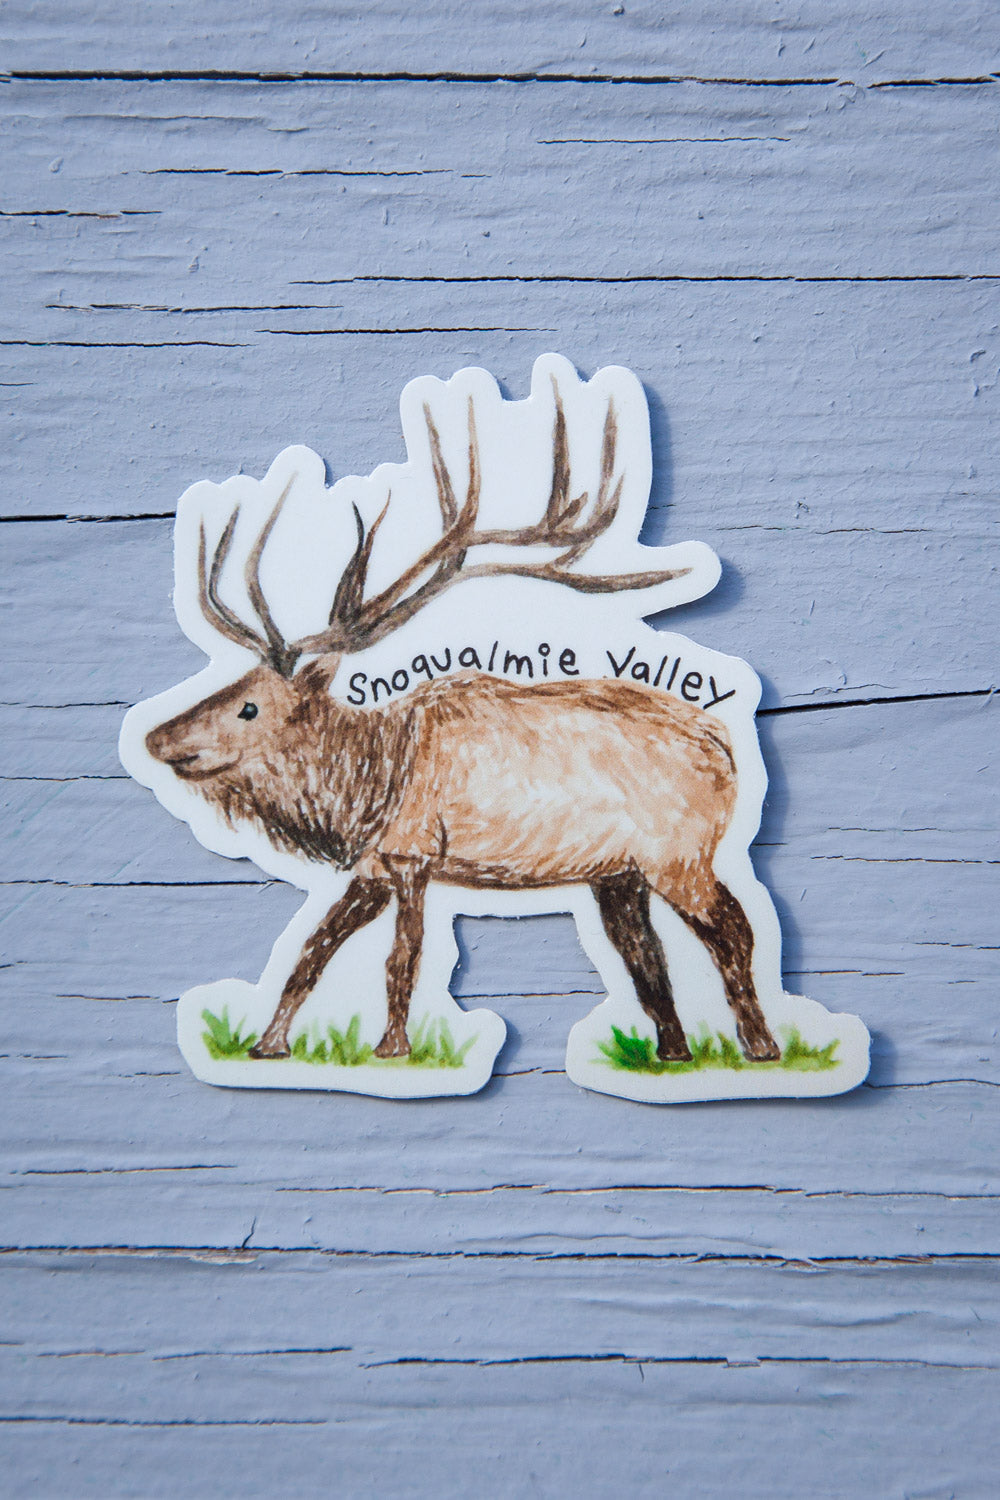 Snoqualmie Valley Sticker